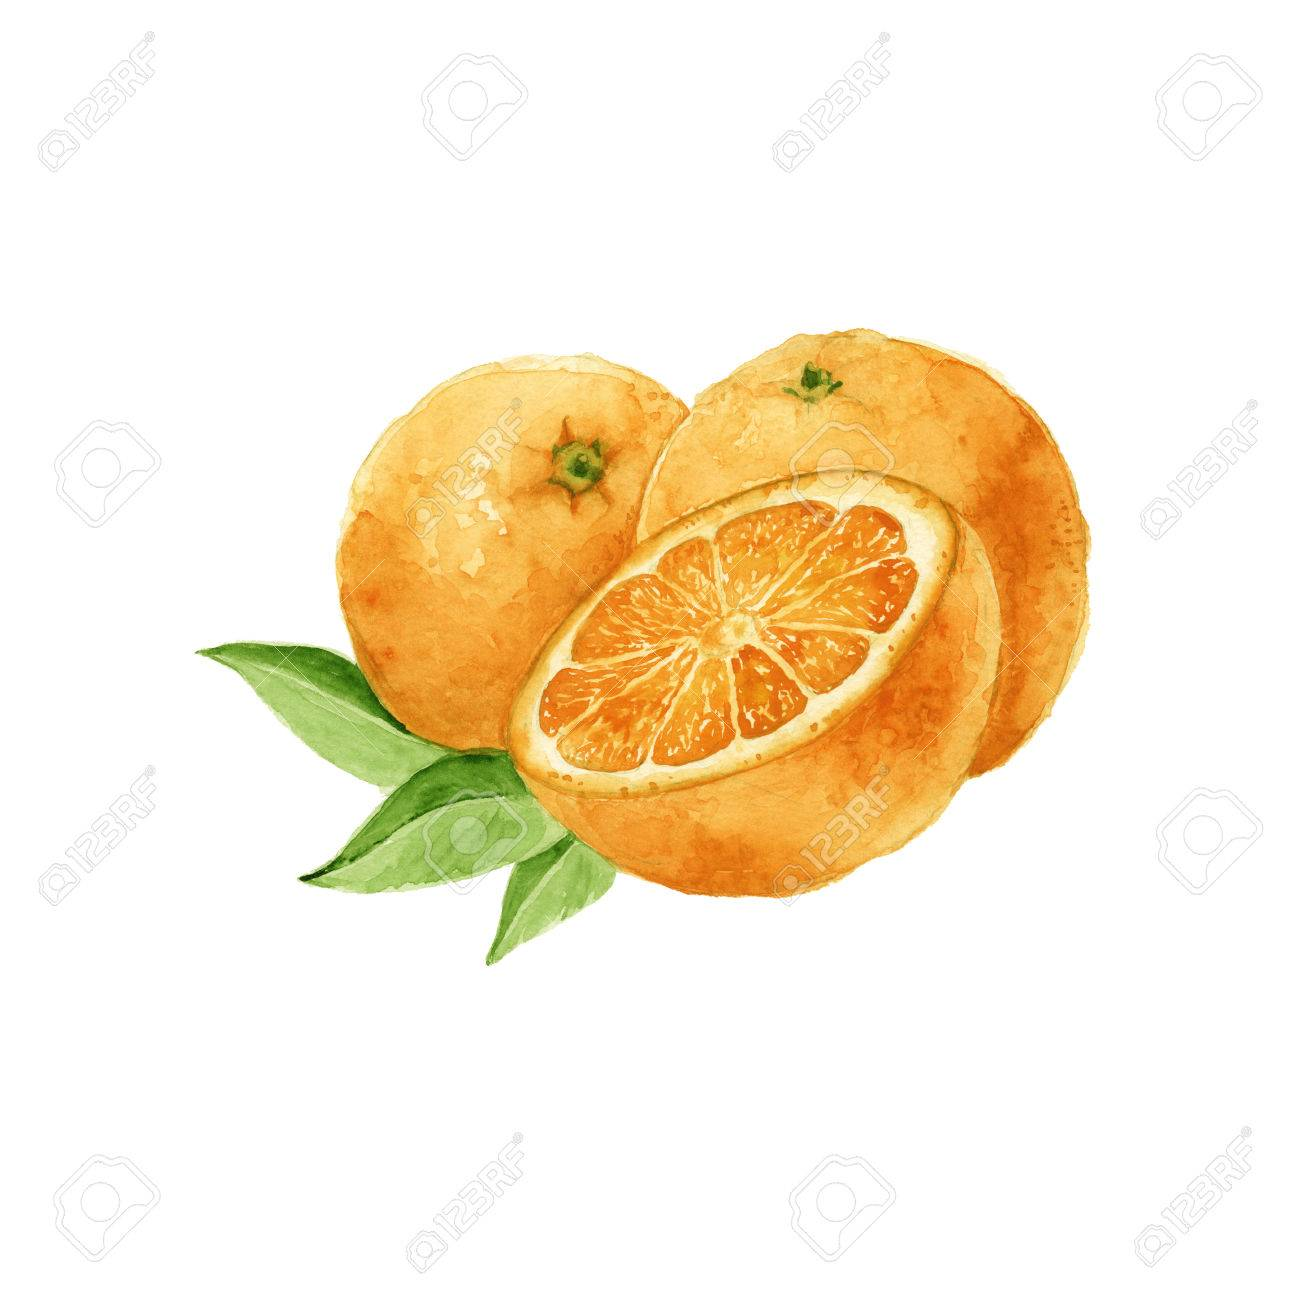 hree oranges. in section. isolated. watercolor - 54405635